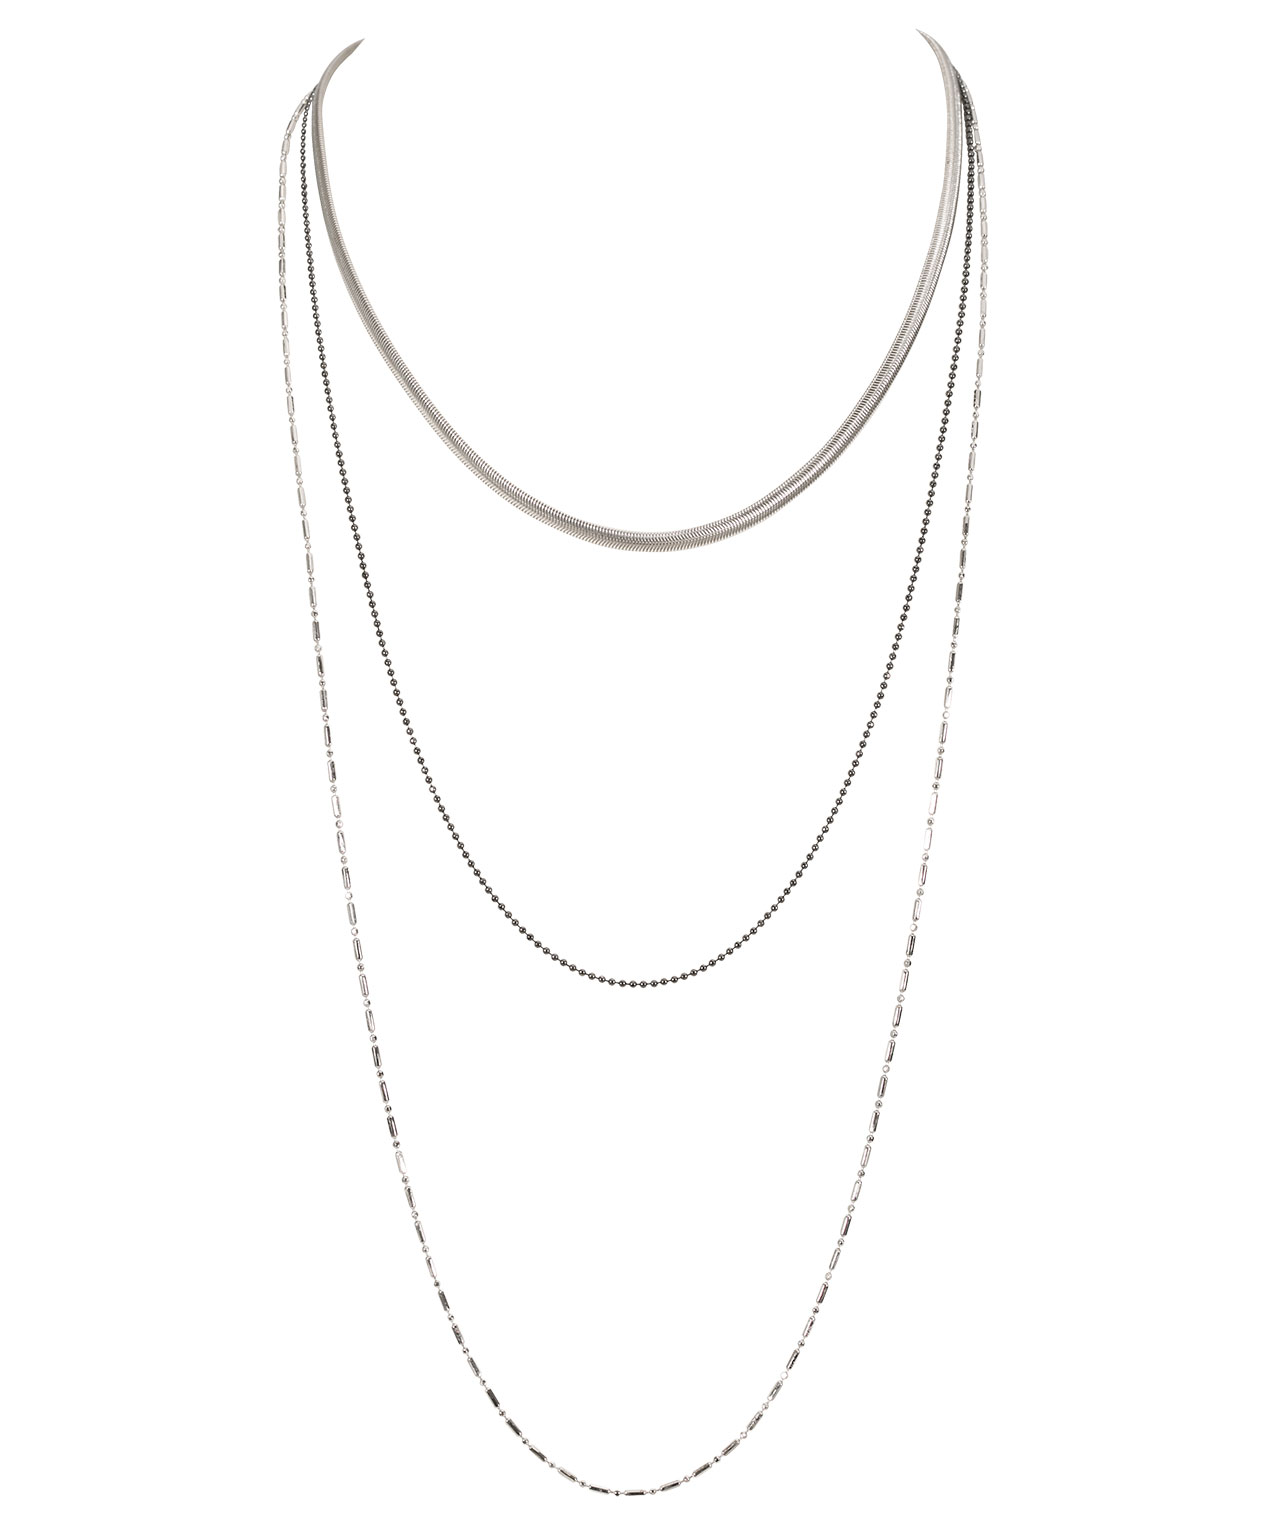 Simple Chain Necklace | Rickis